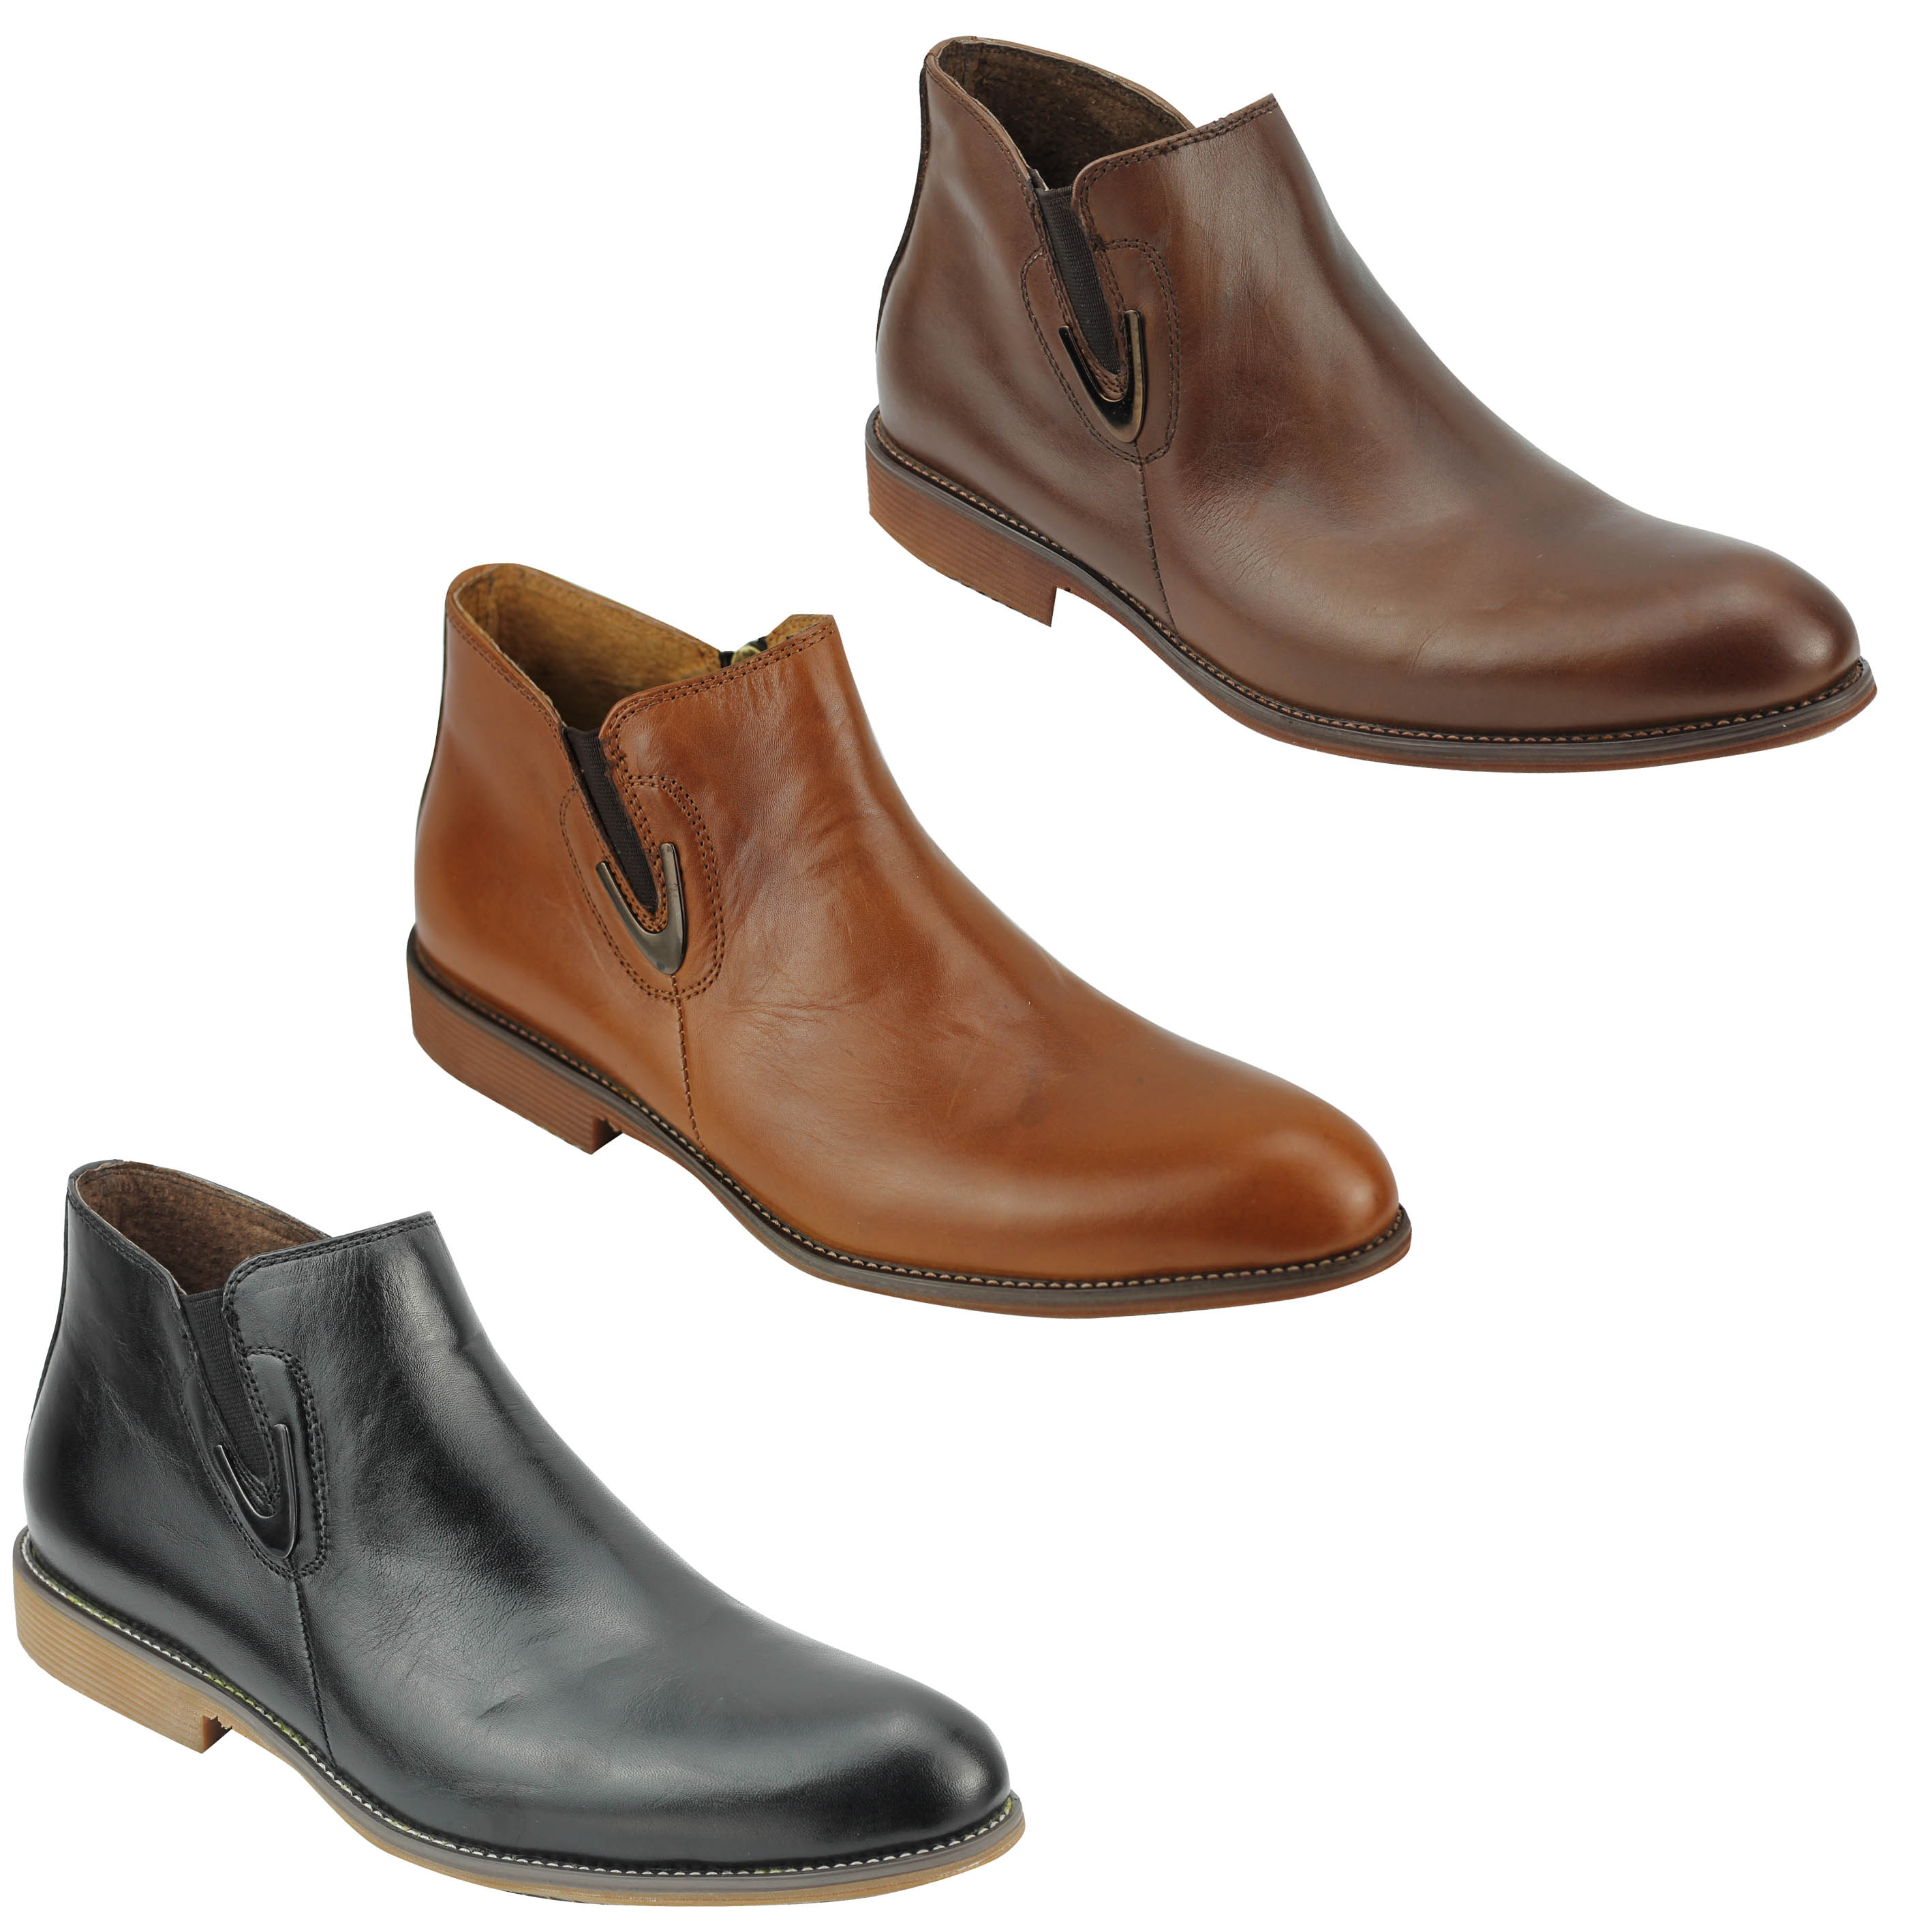 1fe48b672b59 Details about New Mens Real Leather Vintage Chelsea Boots Classic Zip Ankle  Shoes Black Brown